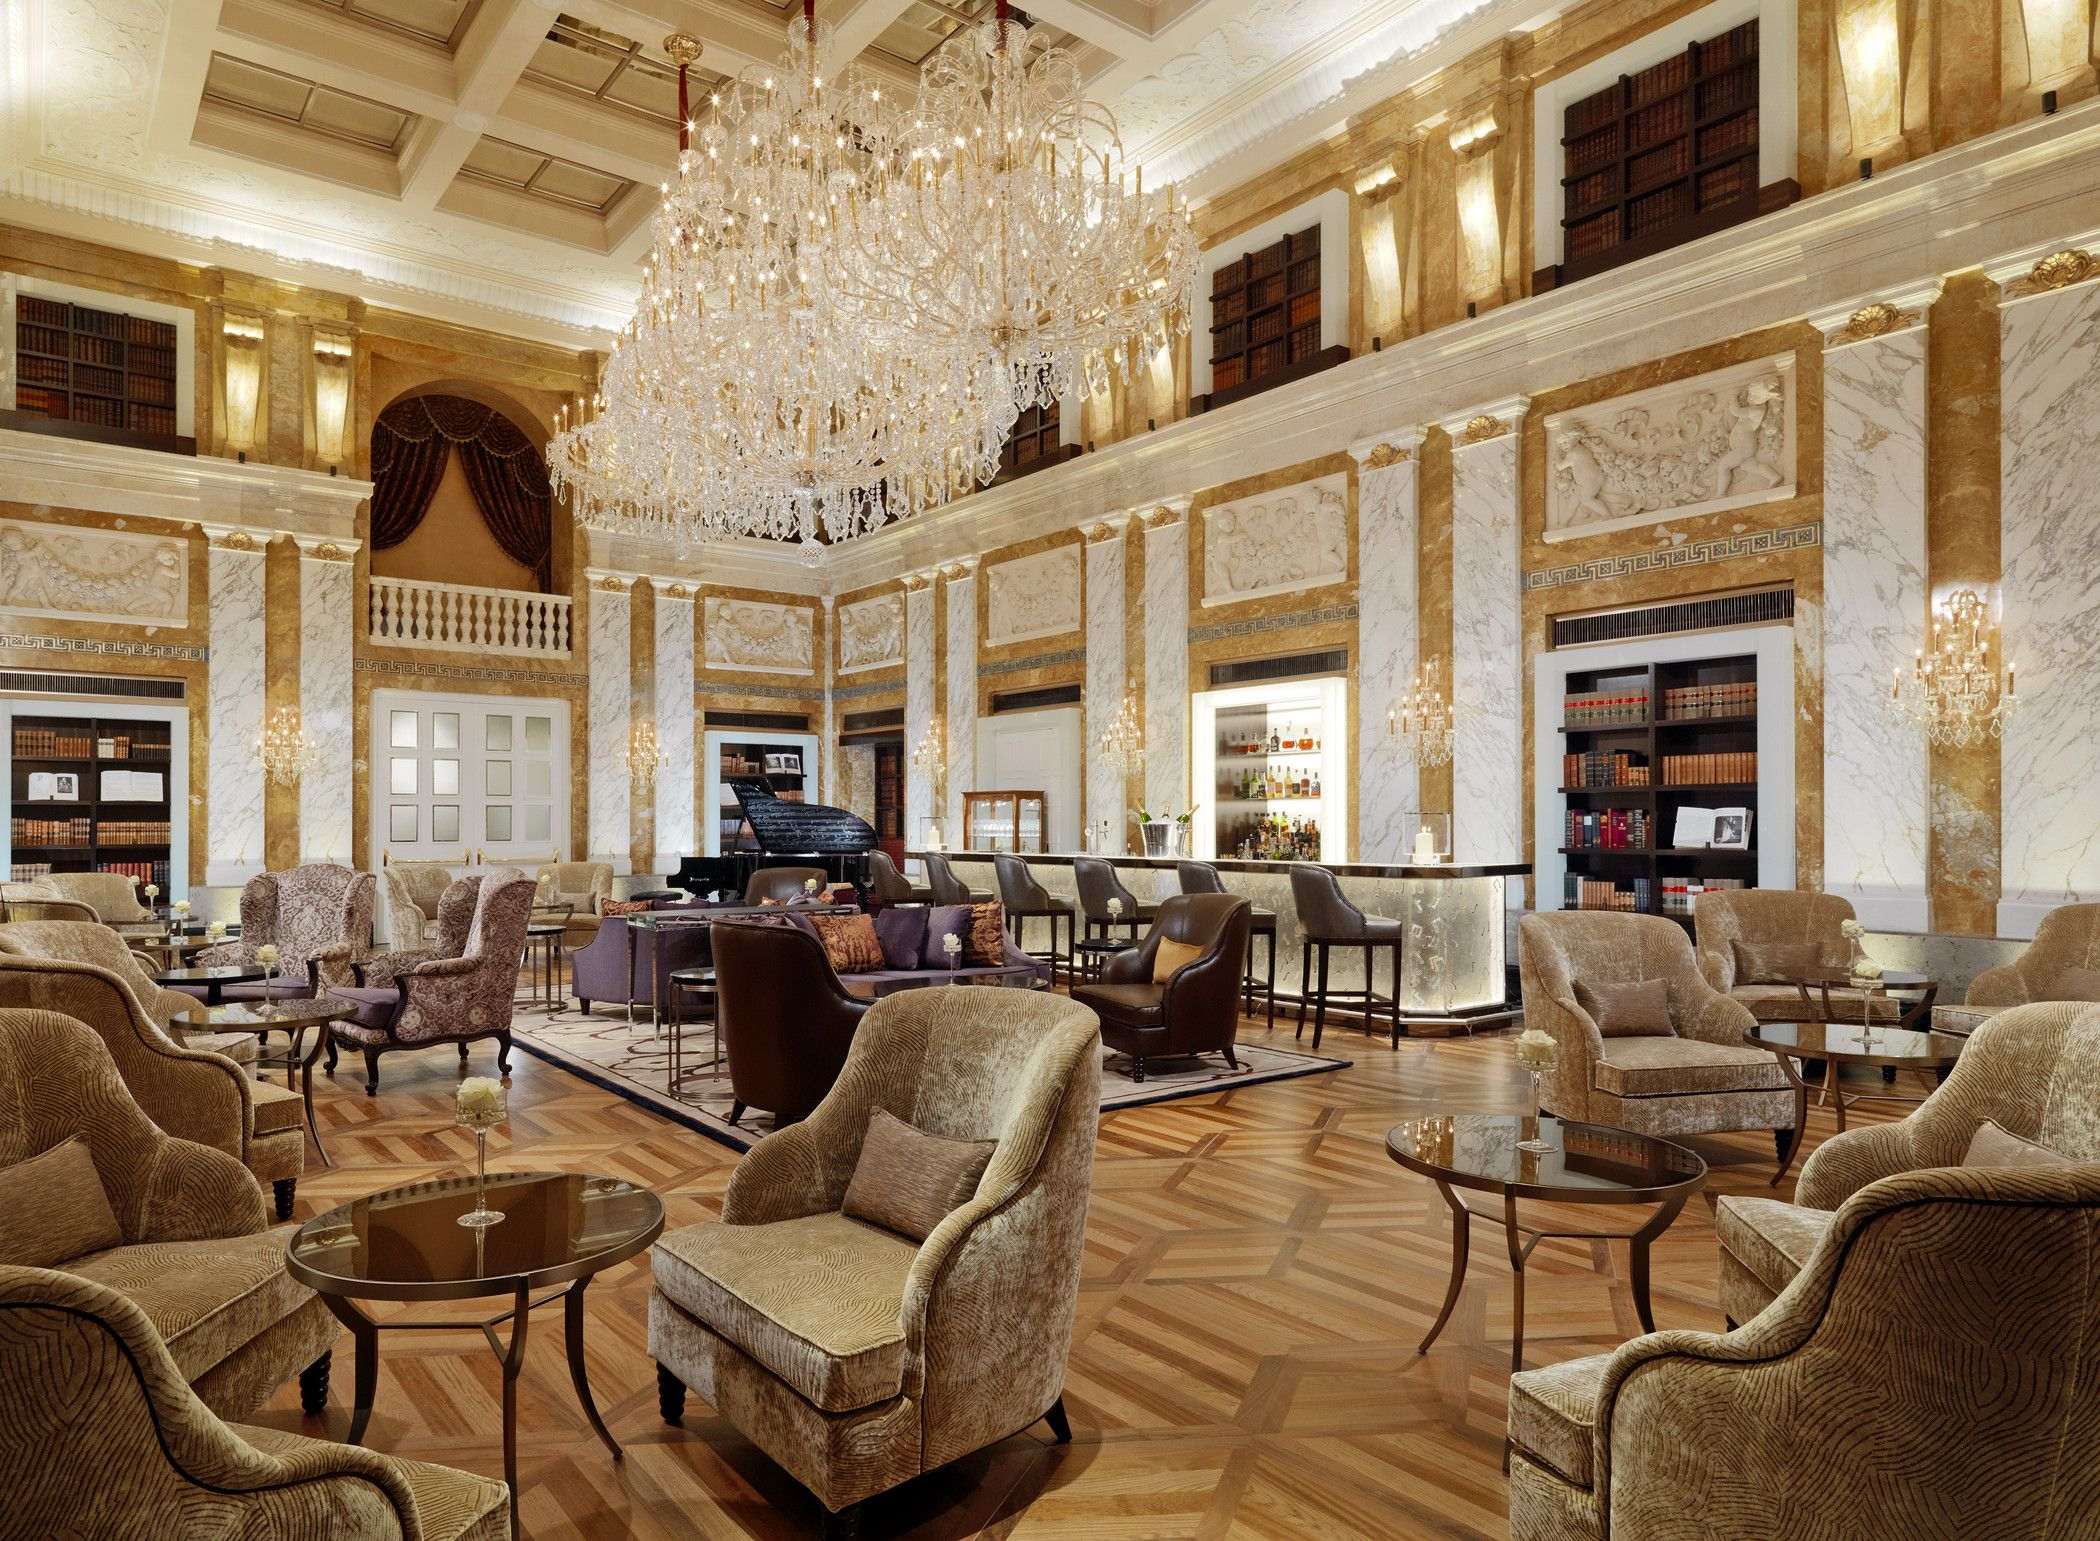 Excellence starts with intelligence and planning. - Hotel Imperial, a Luxury Collection Hotel, Vienna, Austria